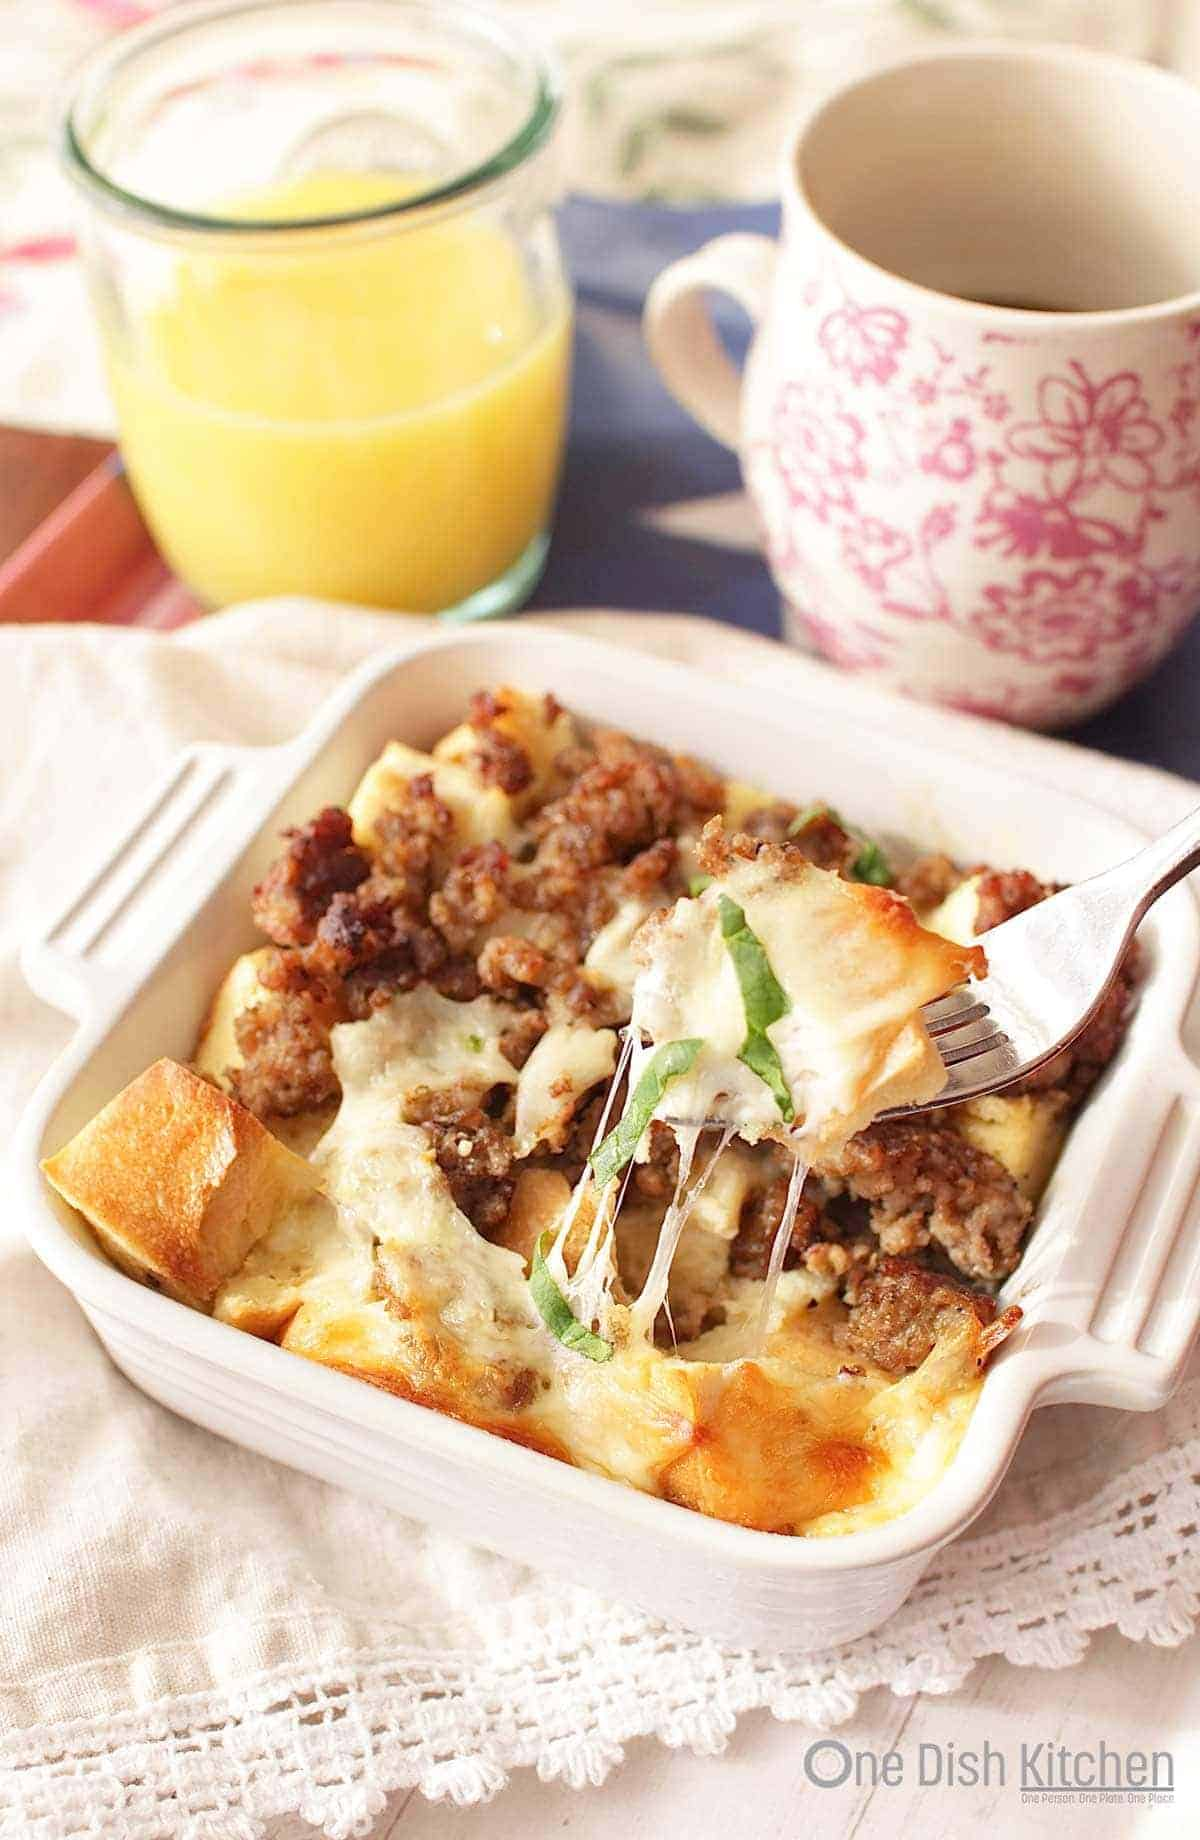 A forkful of breakfast casserole from a small baking dish next to a glass of orange juice and a coffee mug